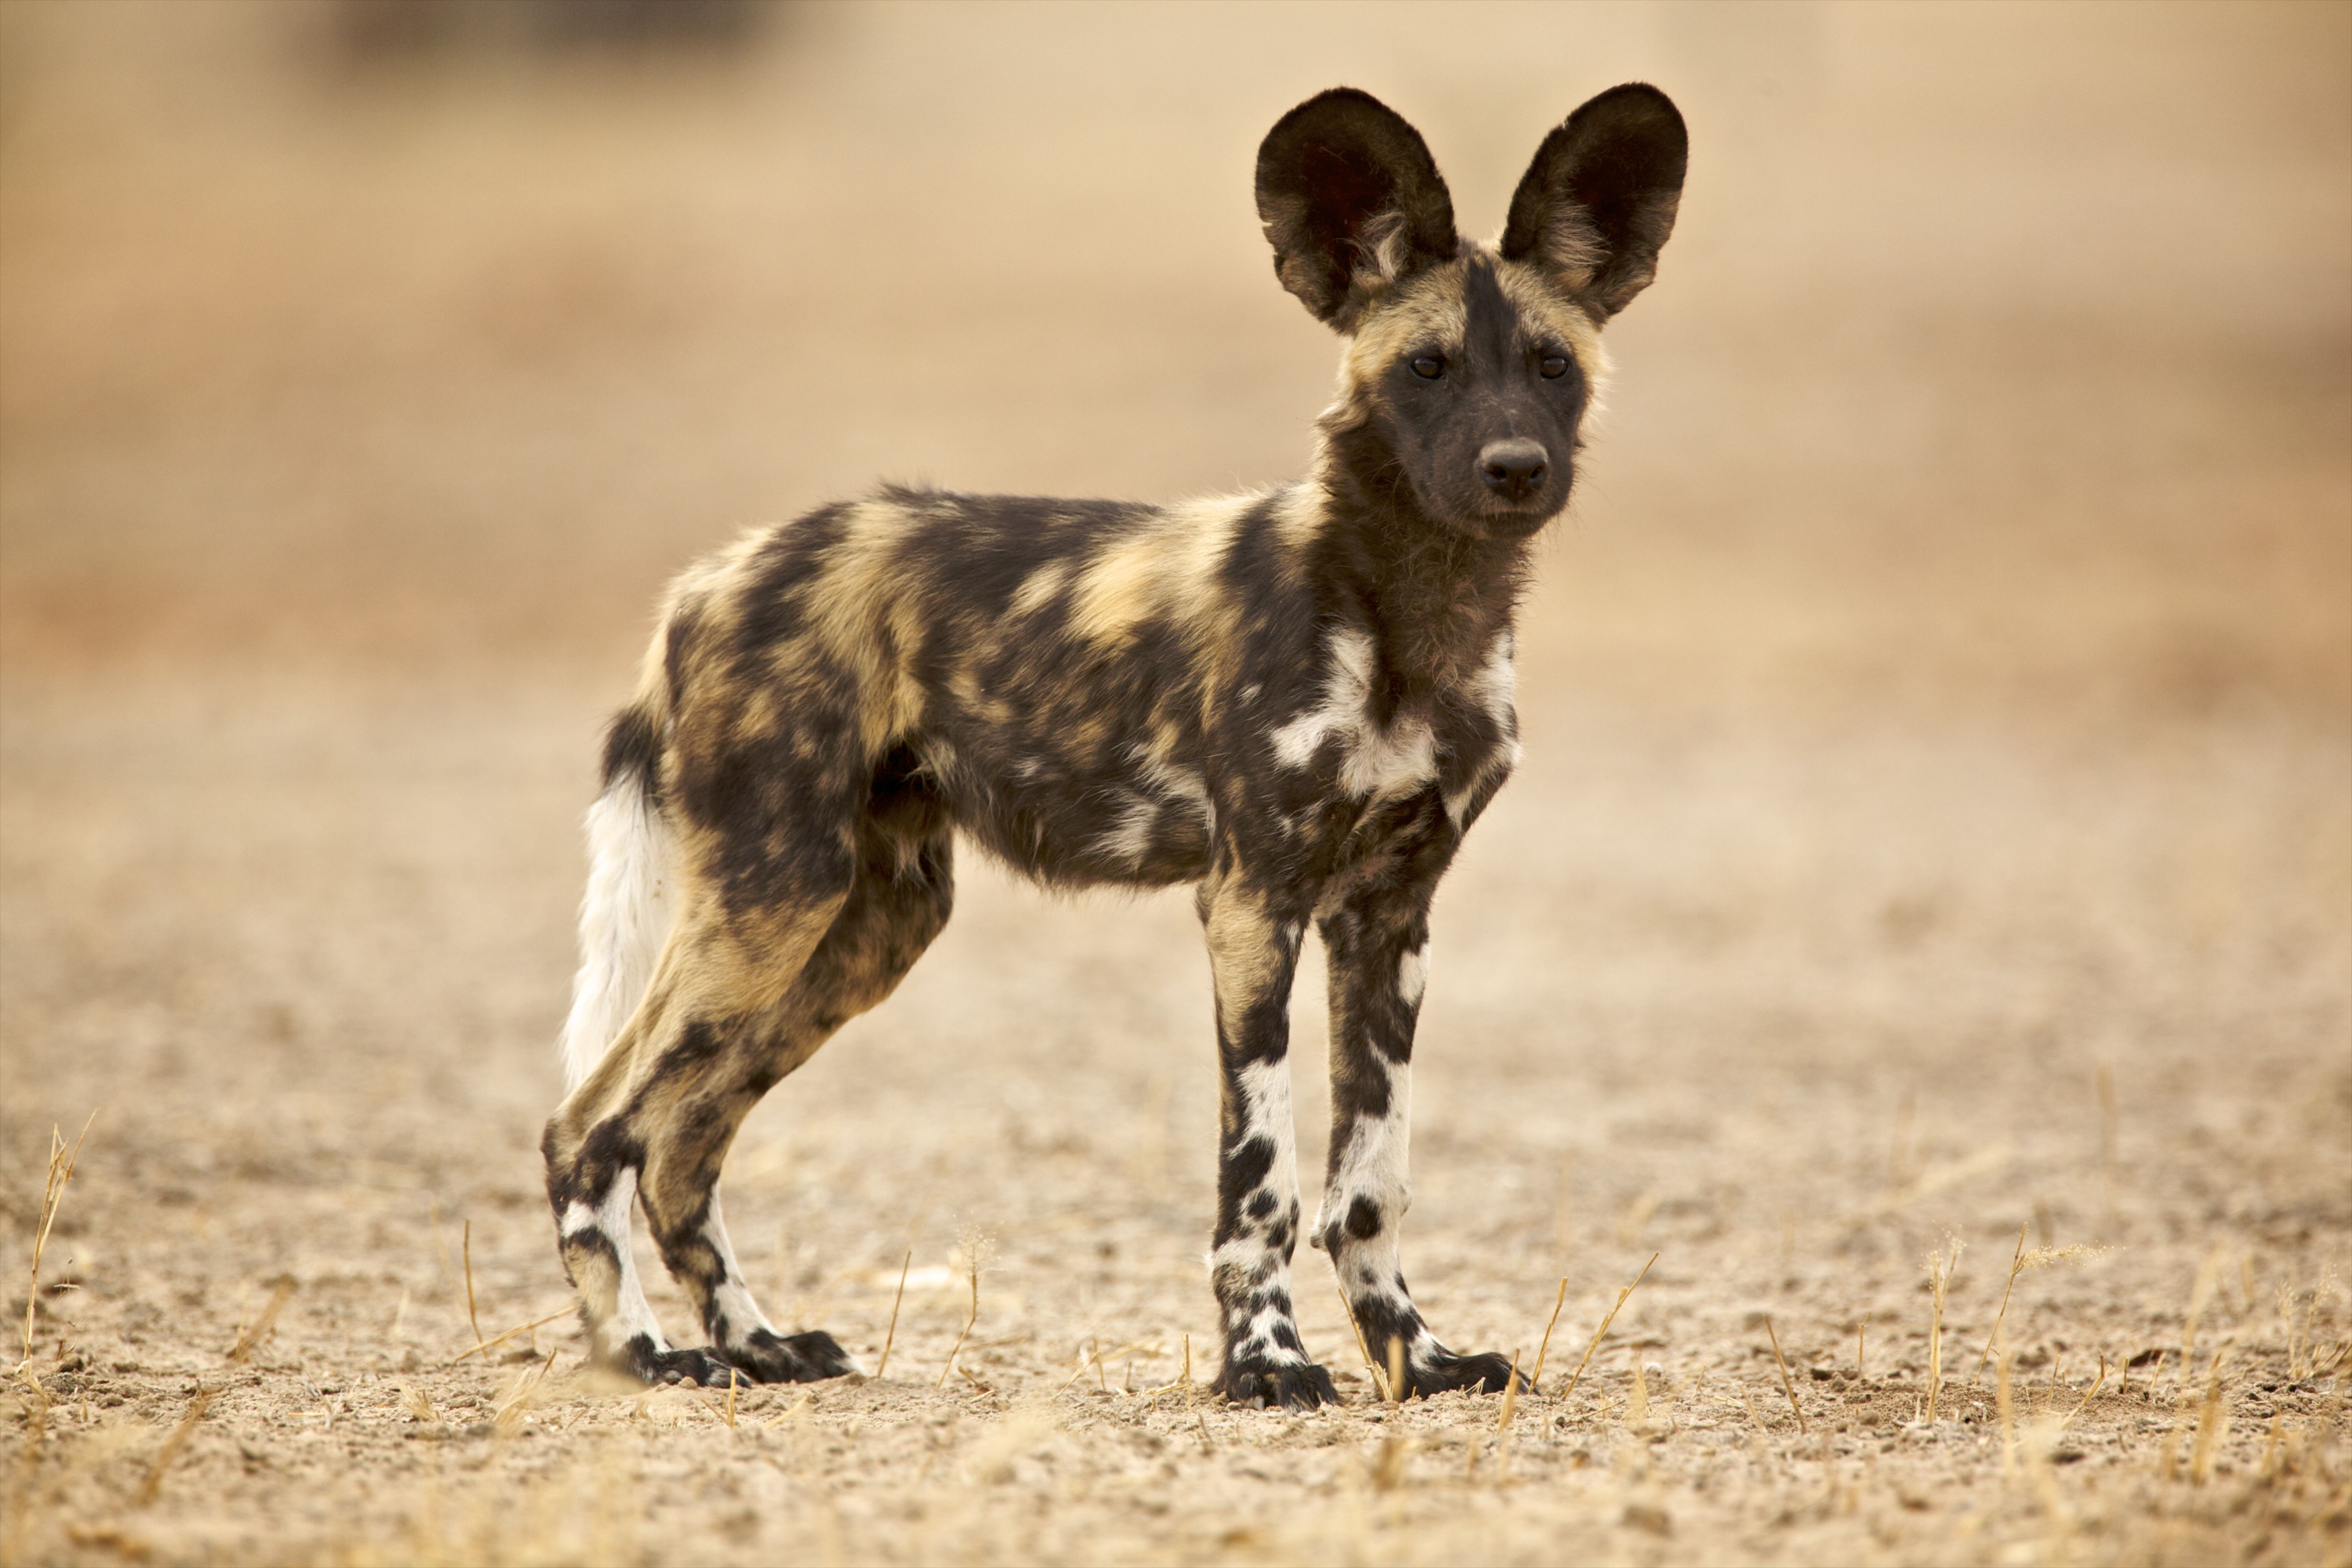 Wild Dog - Laycaon pictus - a young pup